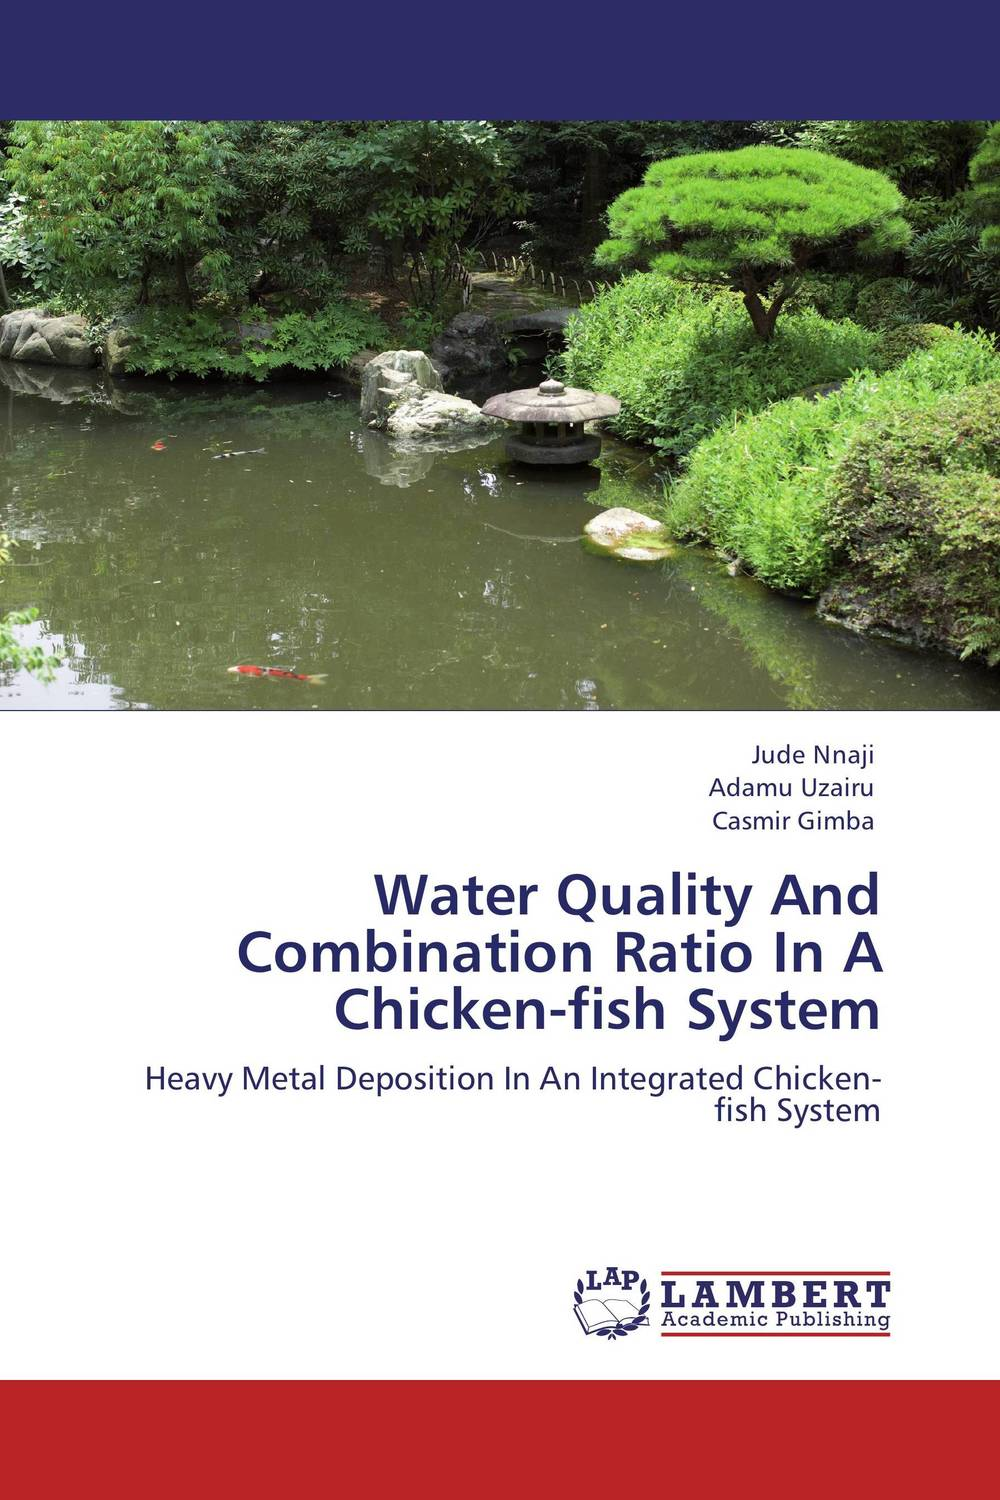 Water Quality And Combination Ratio In A Chicken-fish System biomonitoring with clarias gariepinus